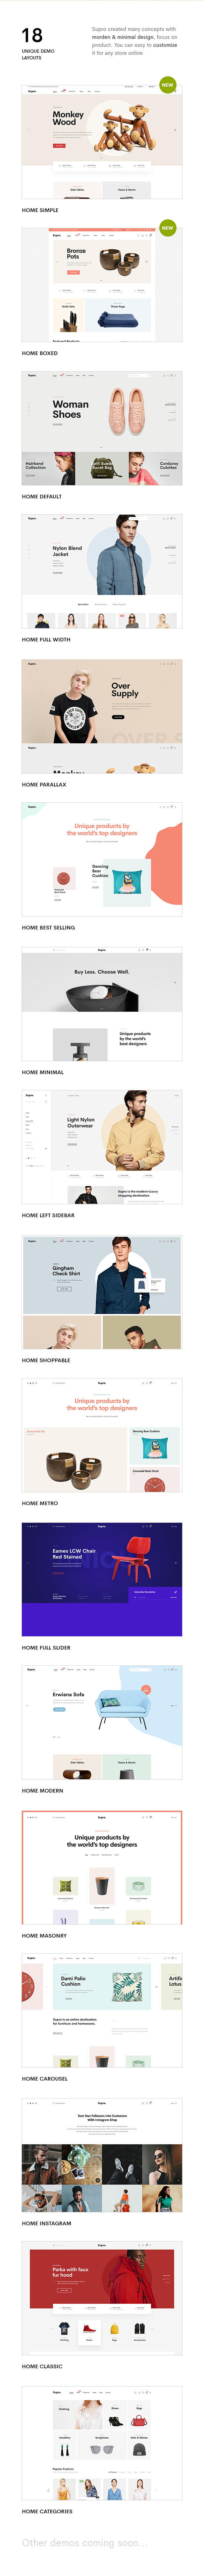 Supro - Minimalistisches AJAX WooCommerce WordPress Vorlage - 8